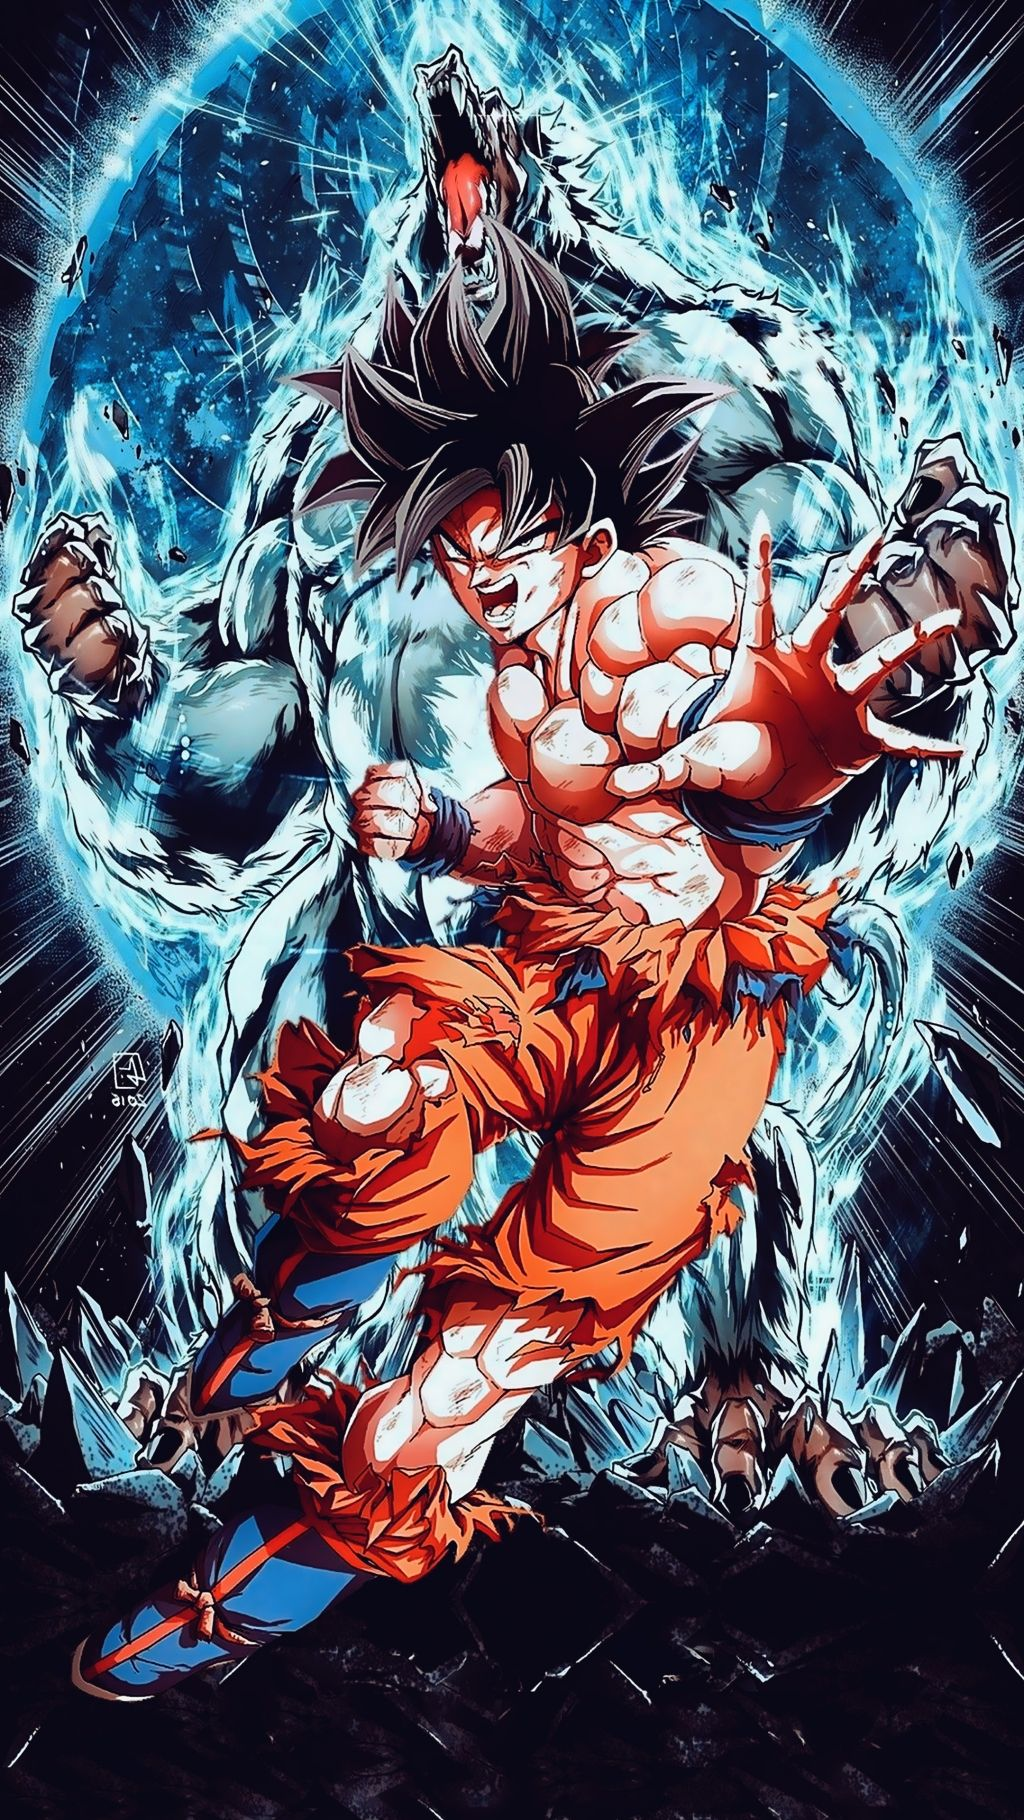 20 4k Wallpapers Of Dbz And Super For Phones In 2020 Dragon Ball Super Wallpapers Dragon Ball Image Dragon Ball Artwork